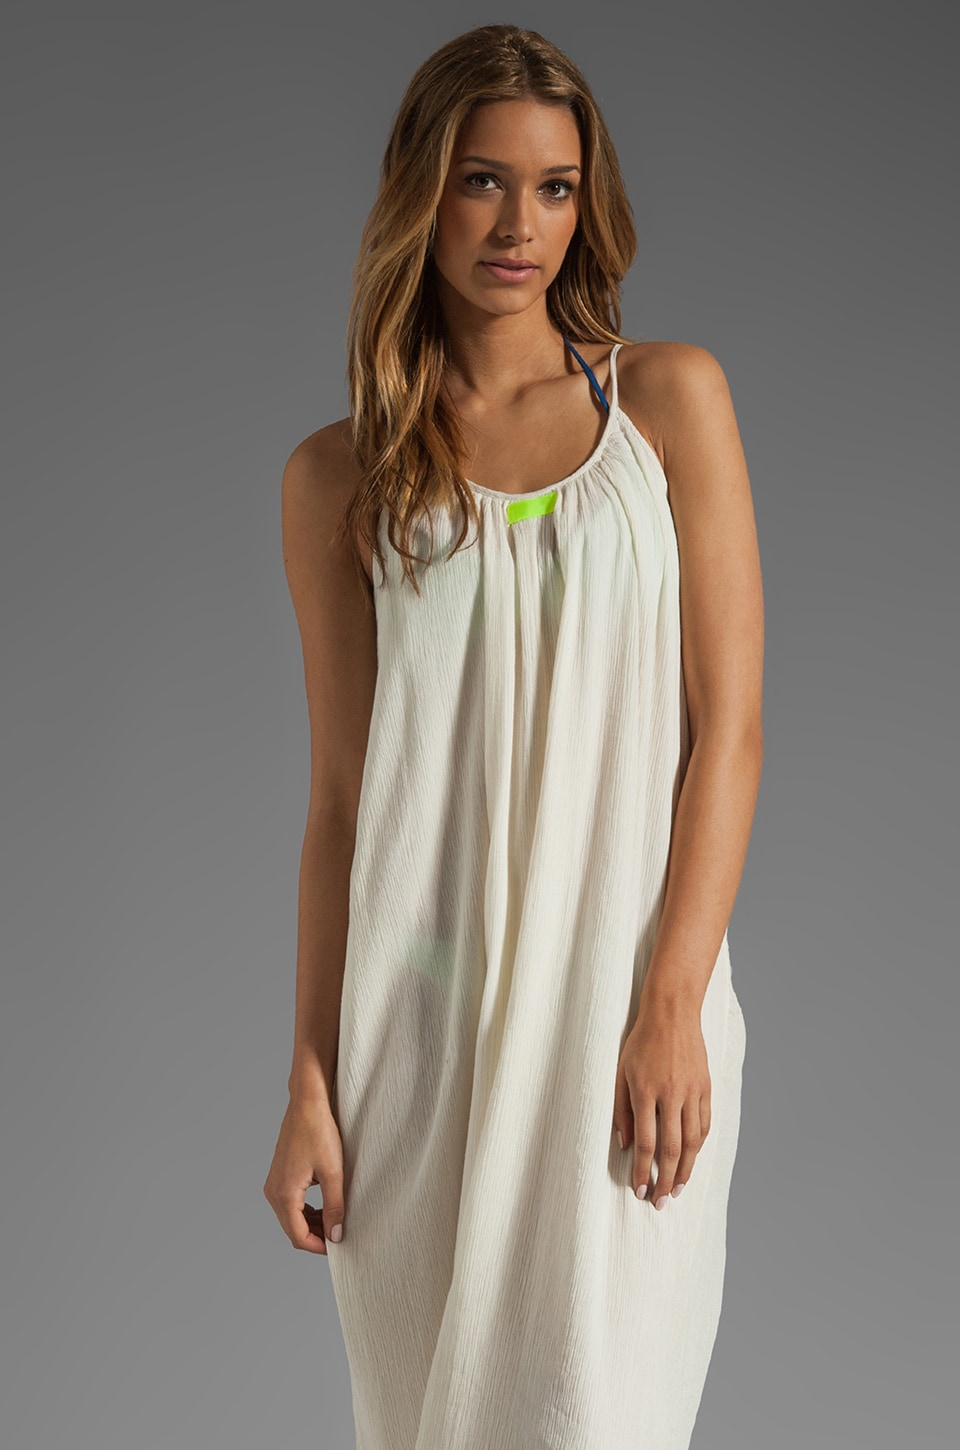 Basta Surf Cocos Dress in Ivory/Yellow